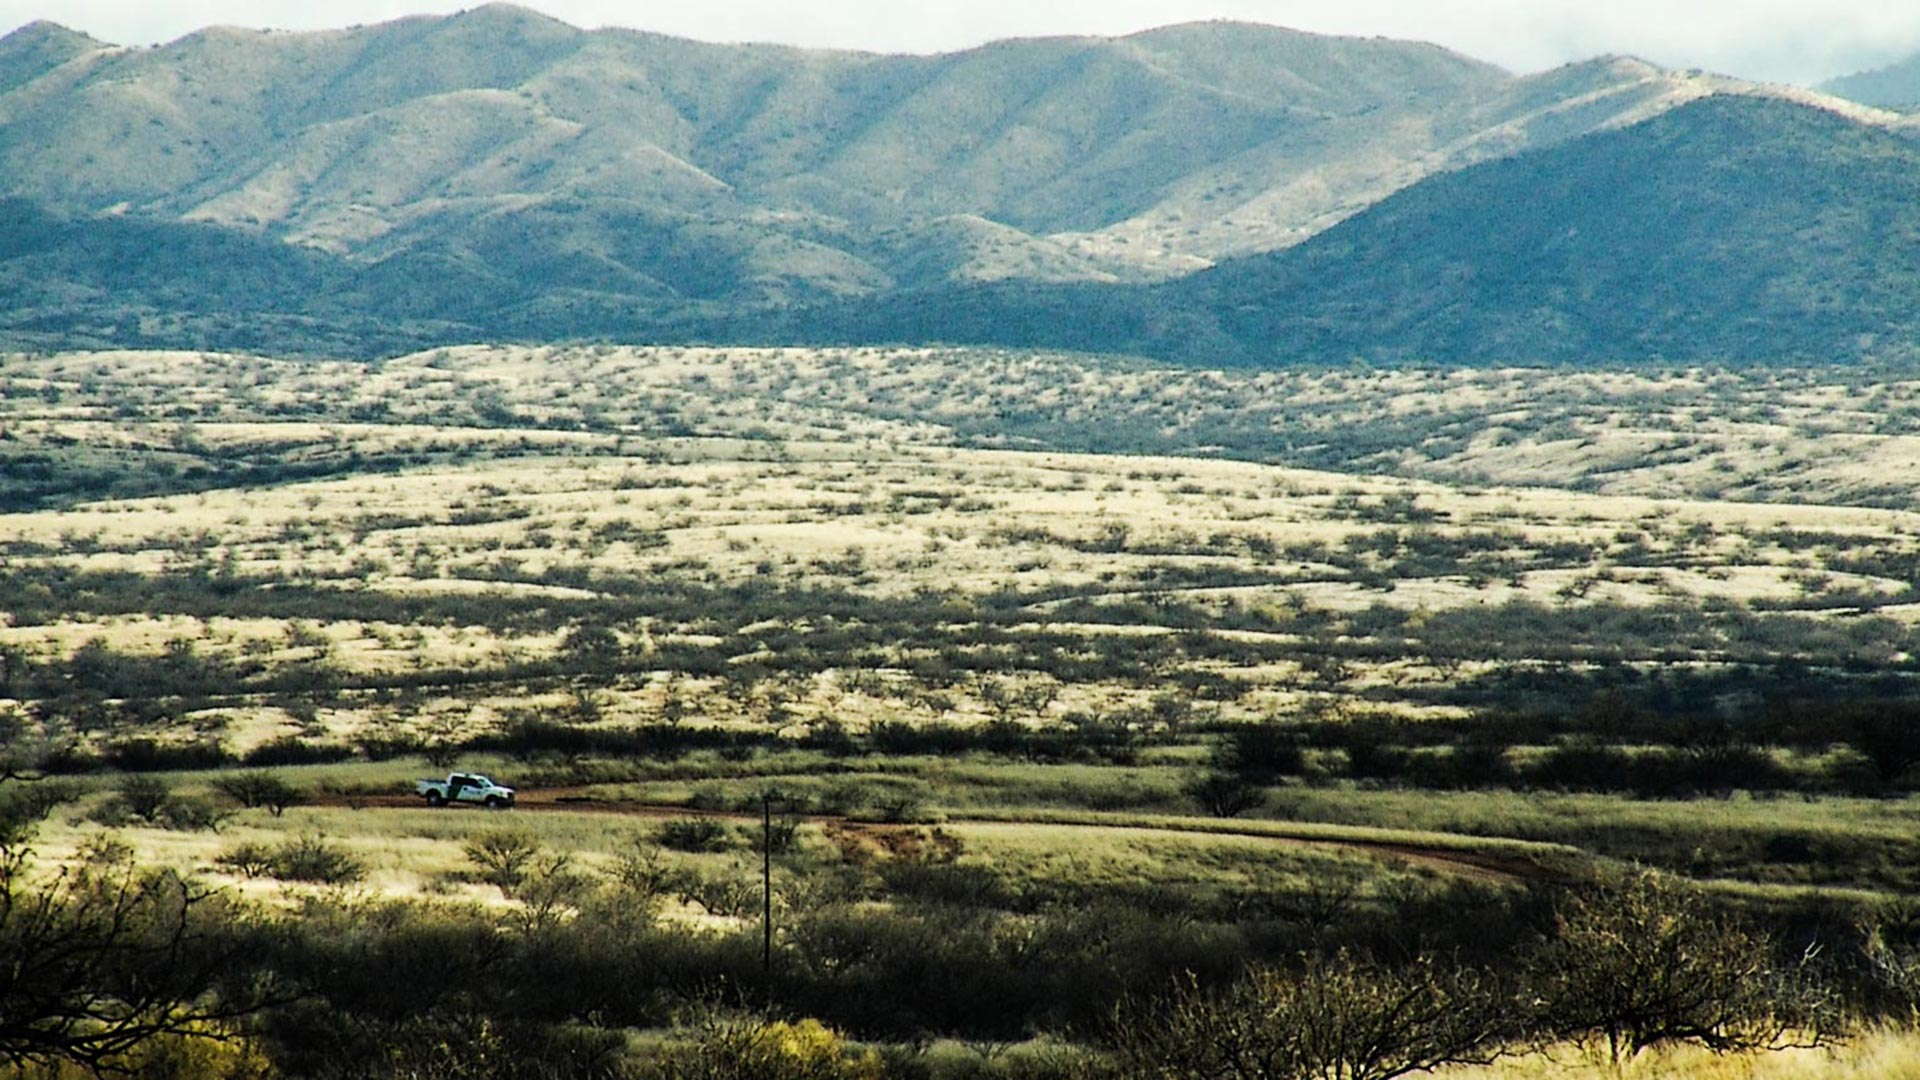 A U.S. Border Patrol vehicle in the desert.